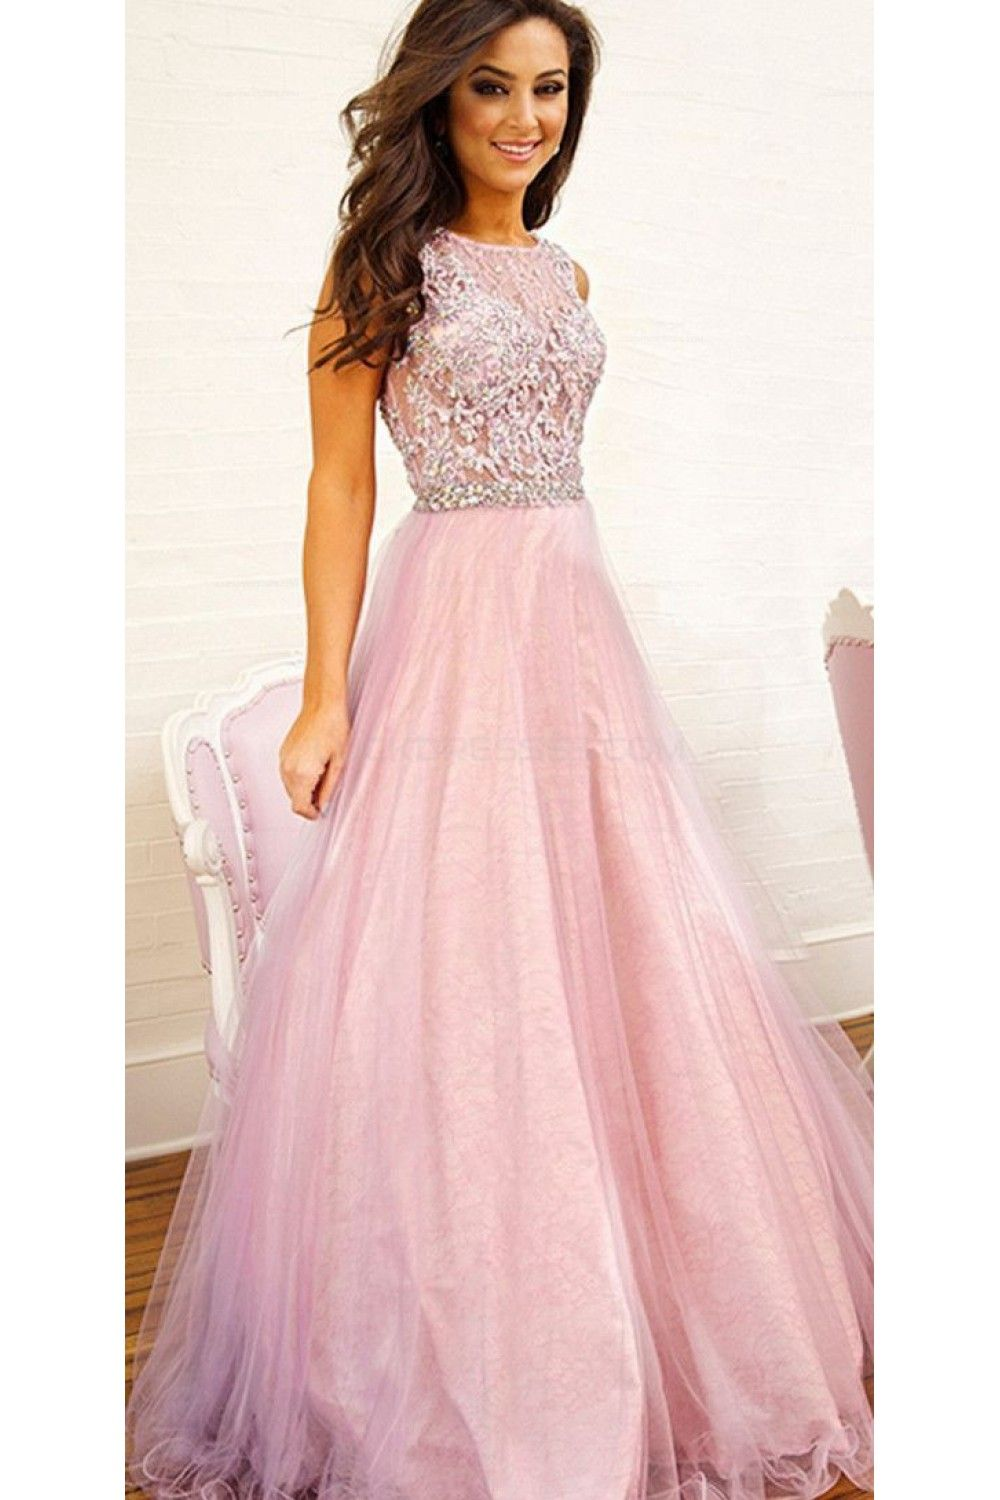 Elegant Long Pink Prom Evening Party Dresses Grad dresses